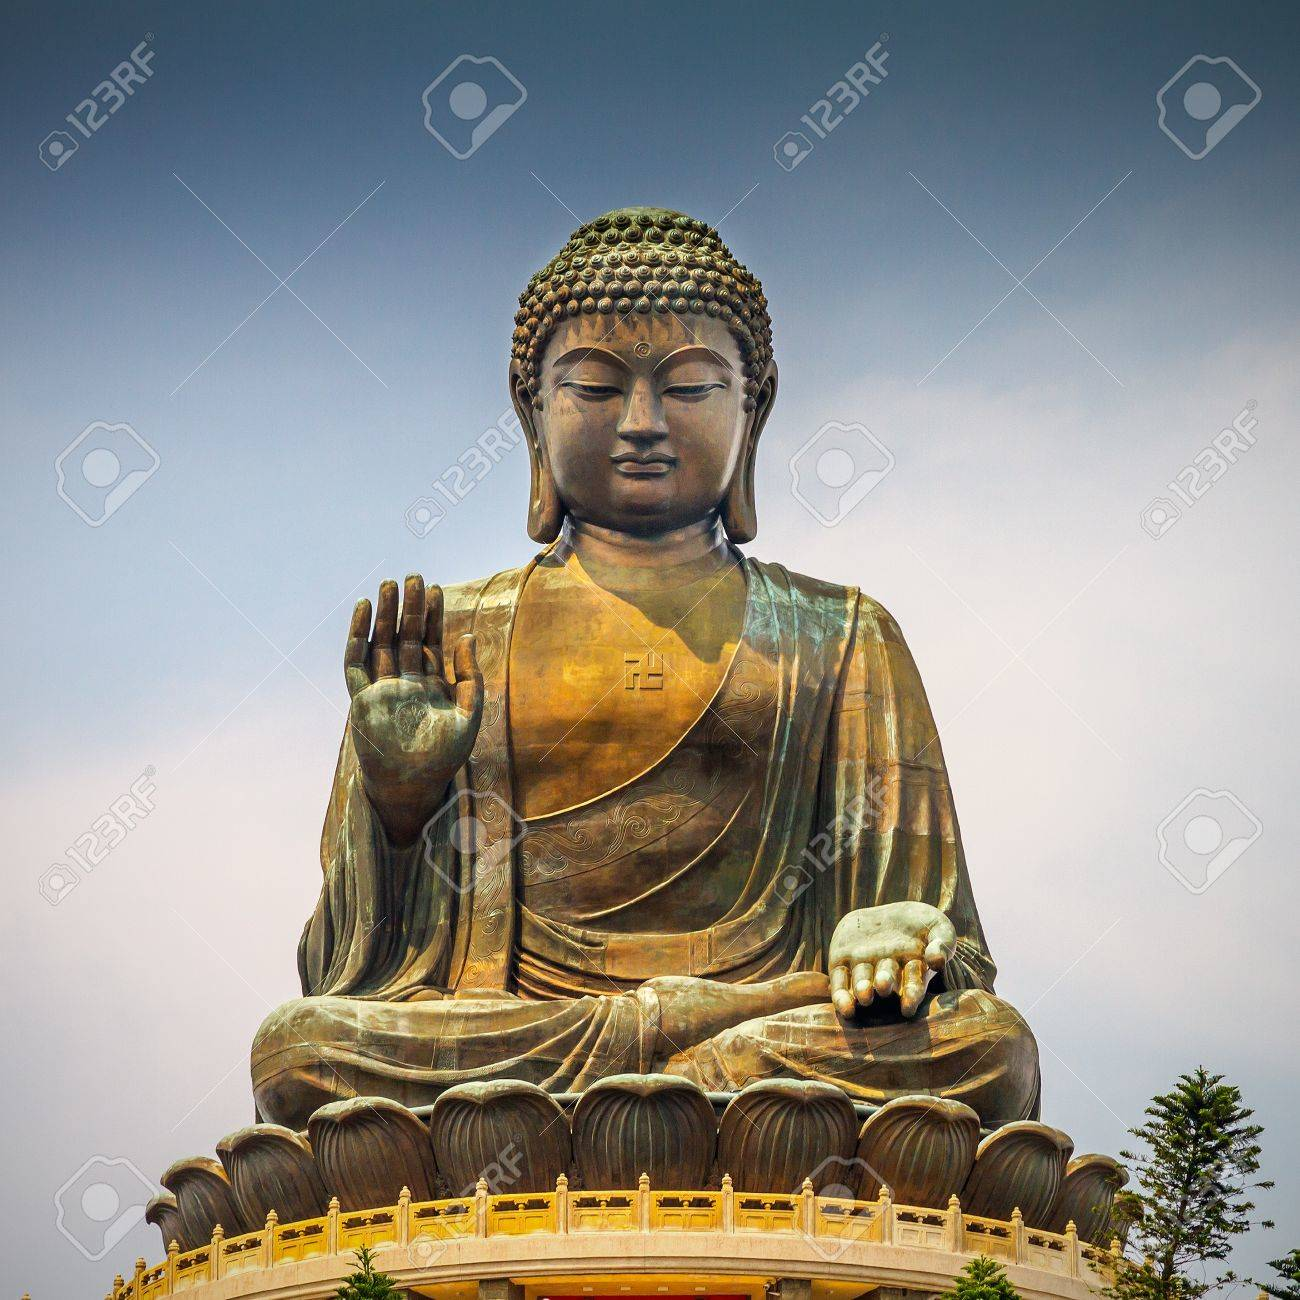 Giant Buddha Statue In Tian Tan Hong Kong China Stock Photo Picture And Royalty Free Image Image 22173861